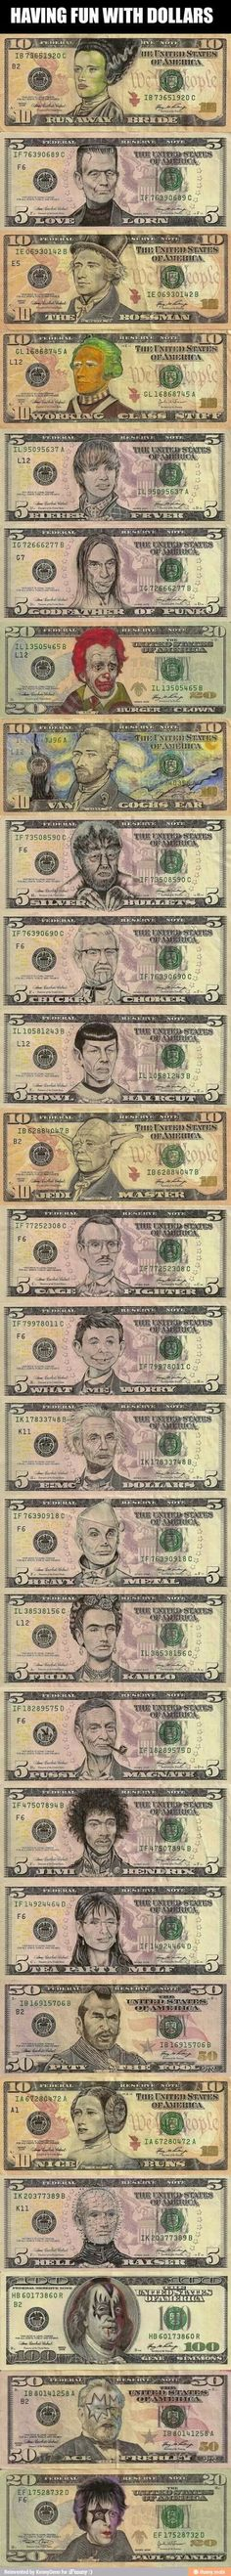 Dollar bills turned into characters